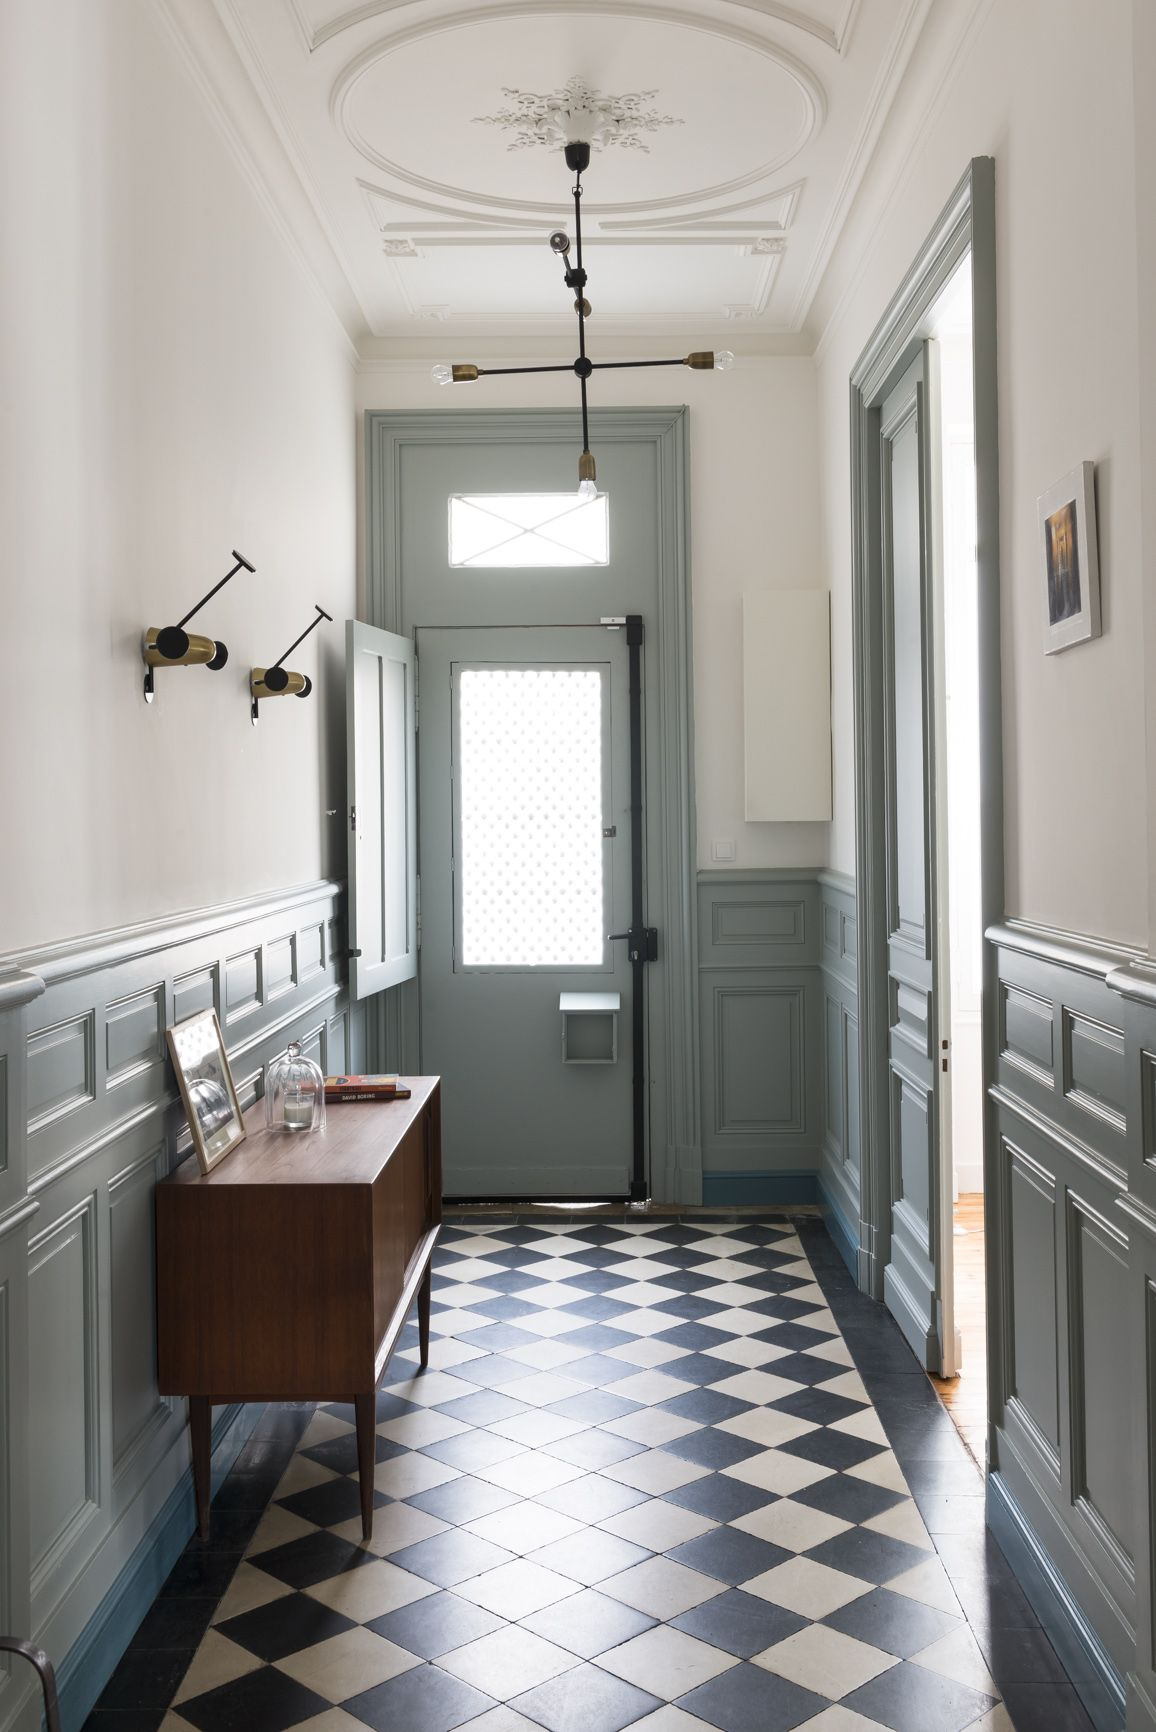 Best 25 maison bourgeoise ideas on pinterest boiseries for Escalier entree deco